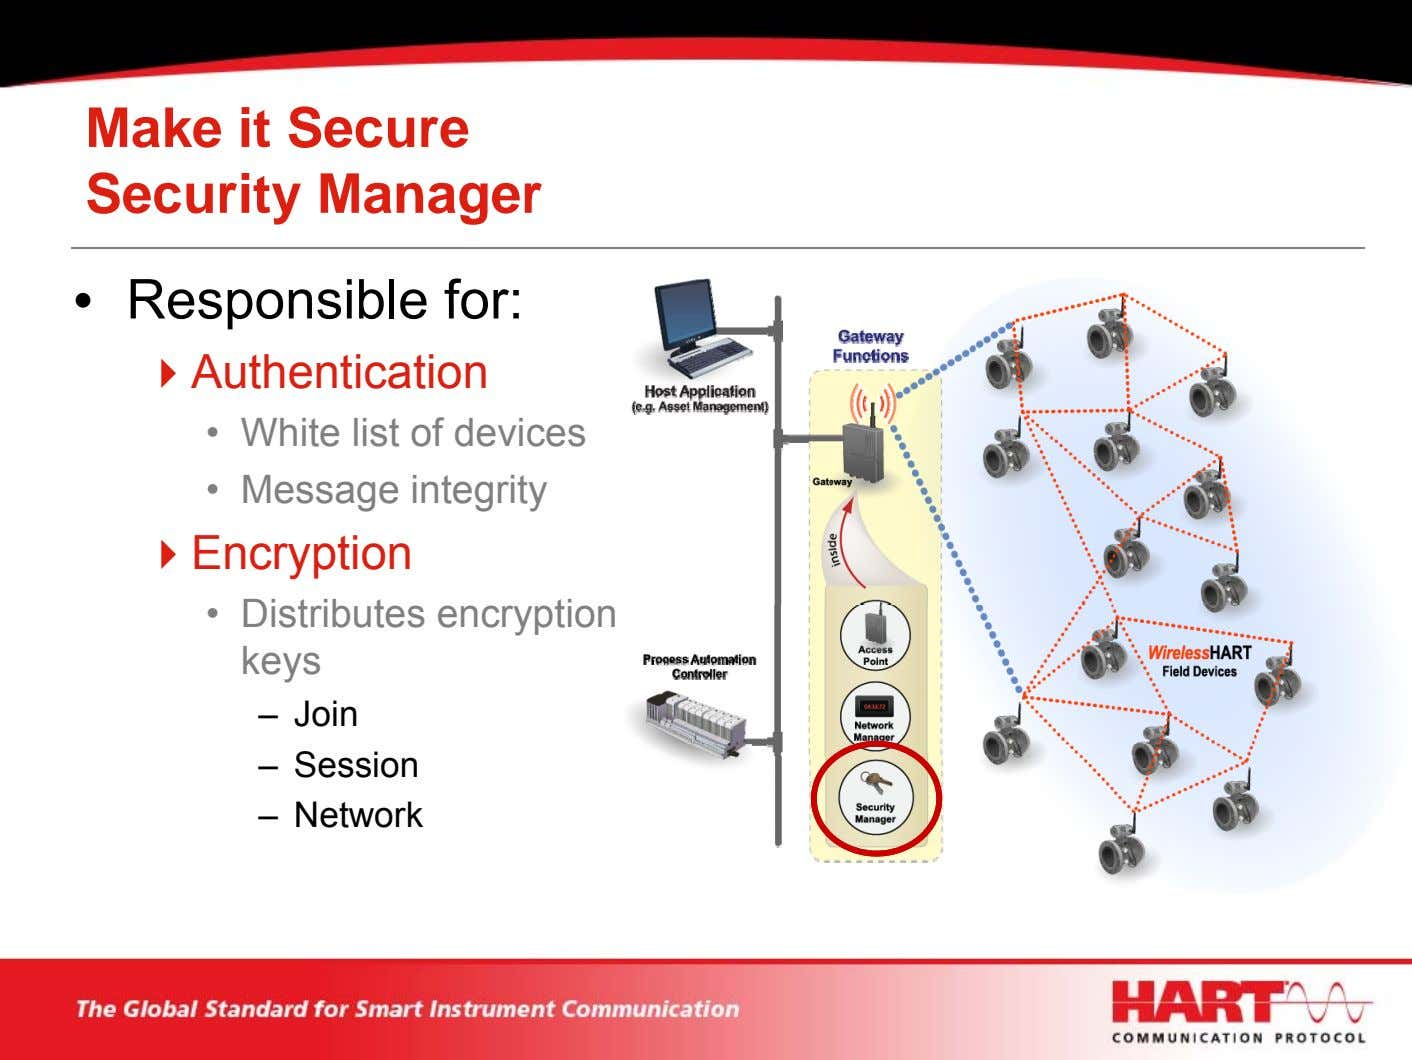 Make it Secure Security Manager • Responsible for: Authentication • White list of devices •